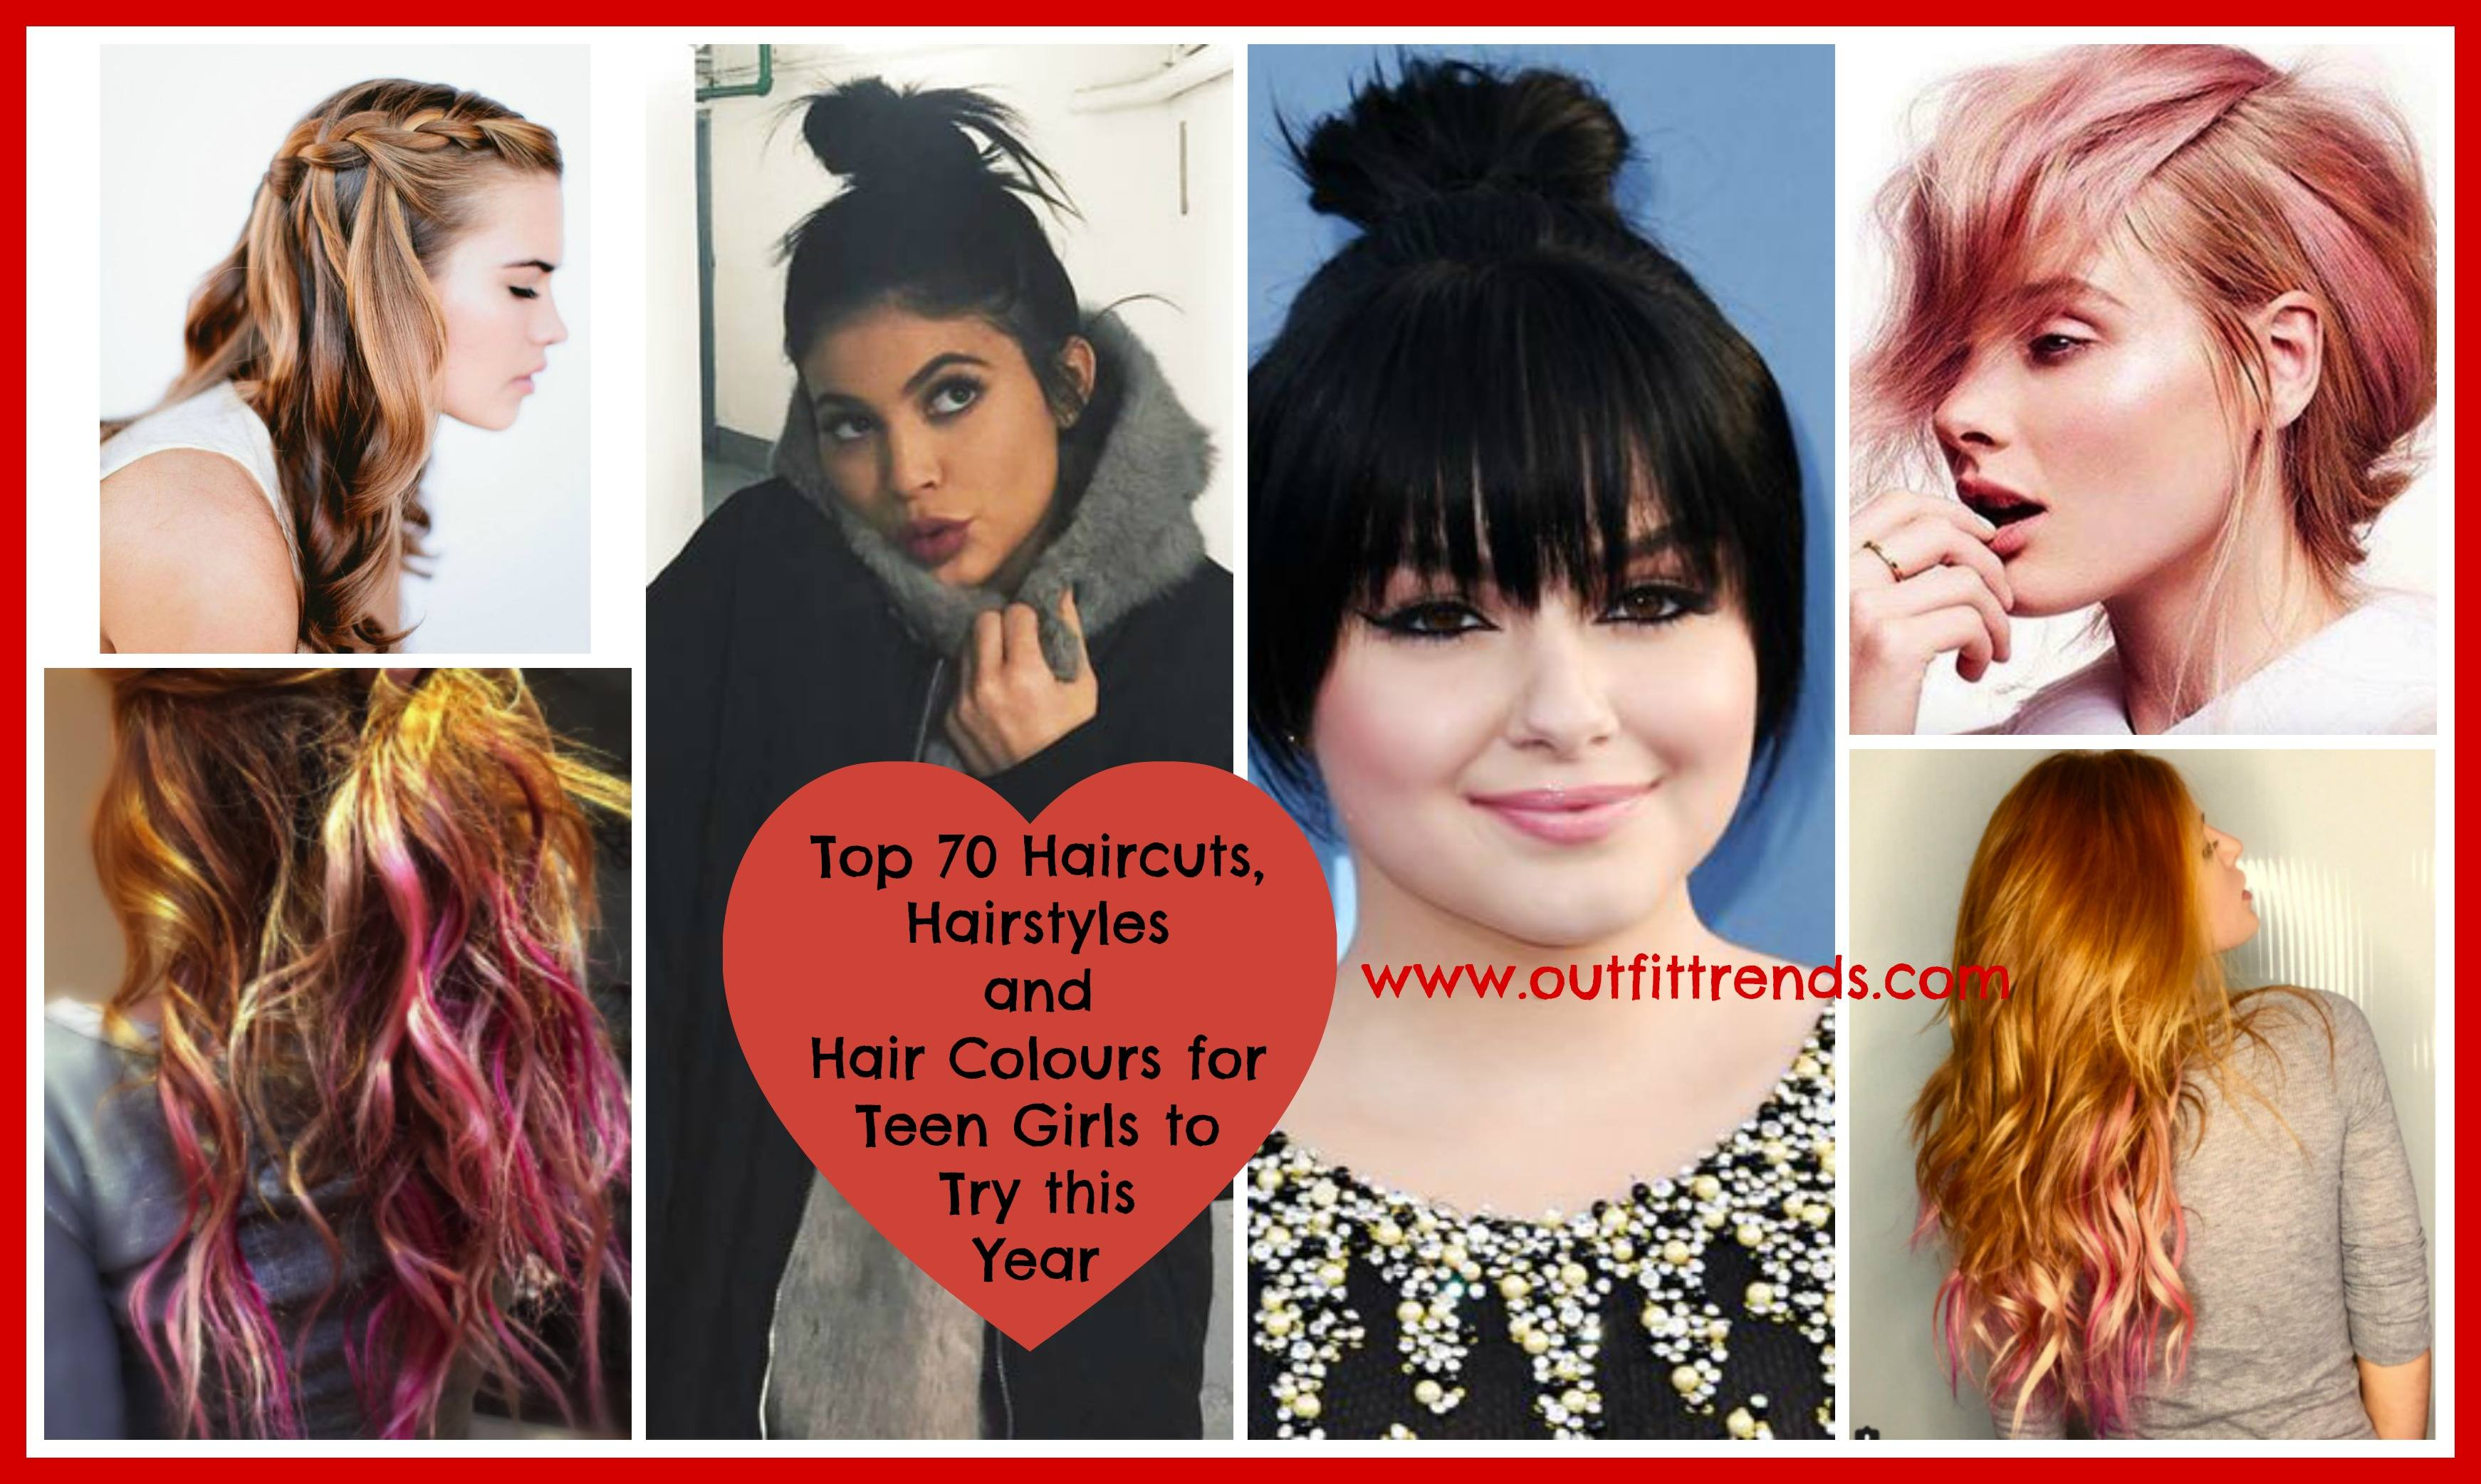 fcc84 latest hairstyles haircuts hair colours for teenage girls.jpg |